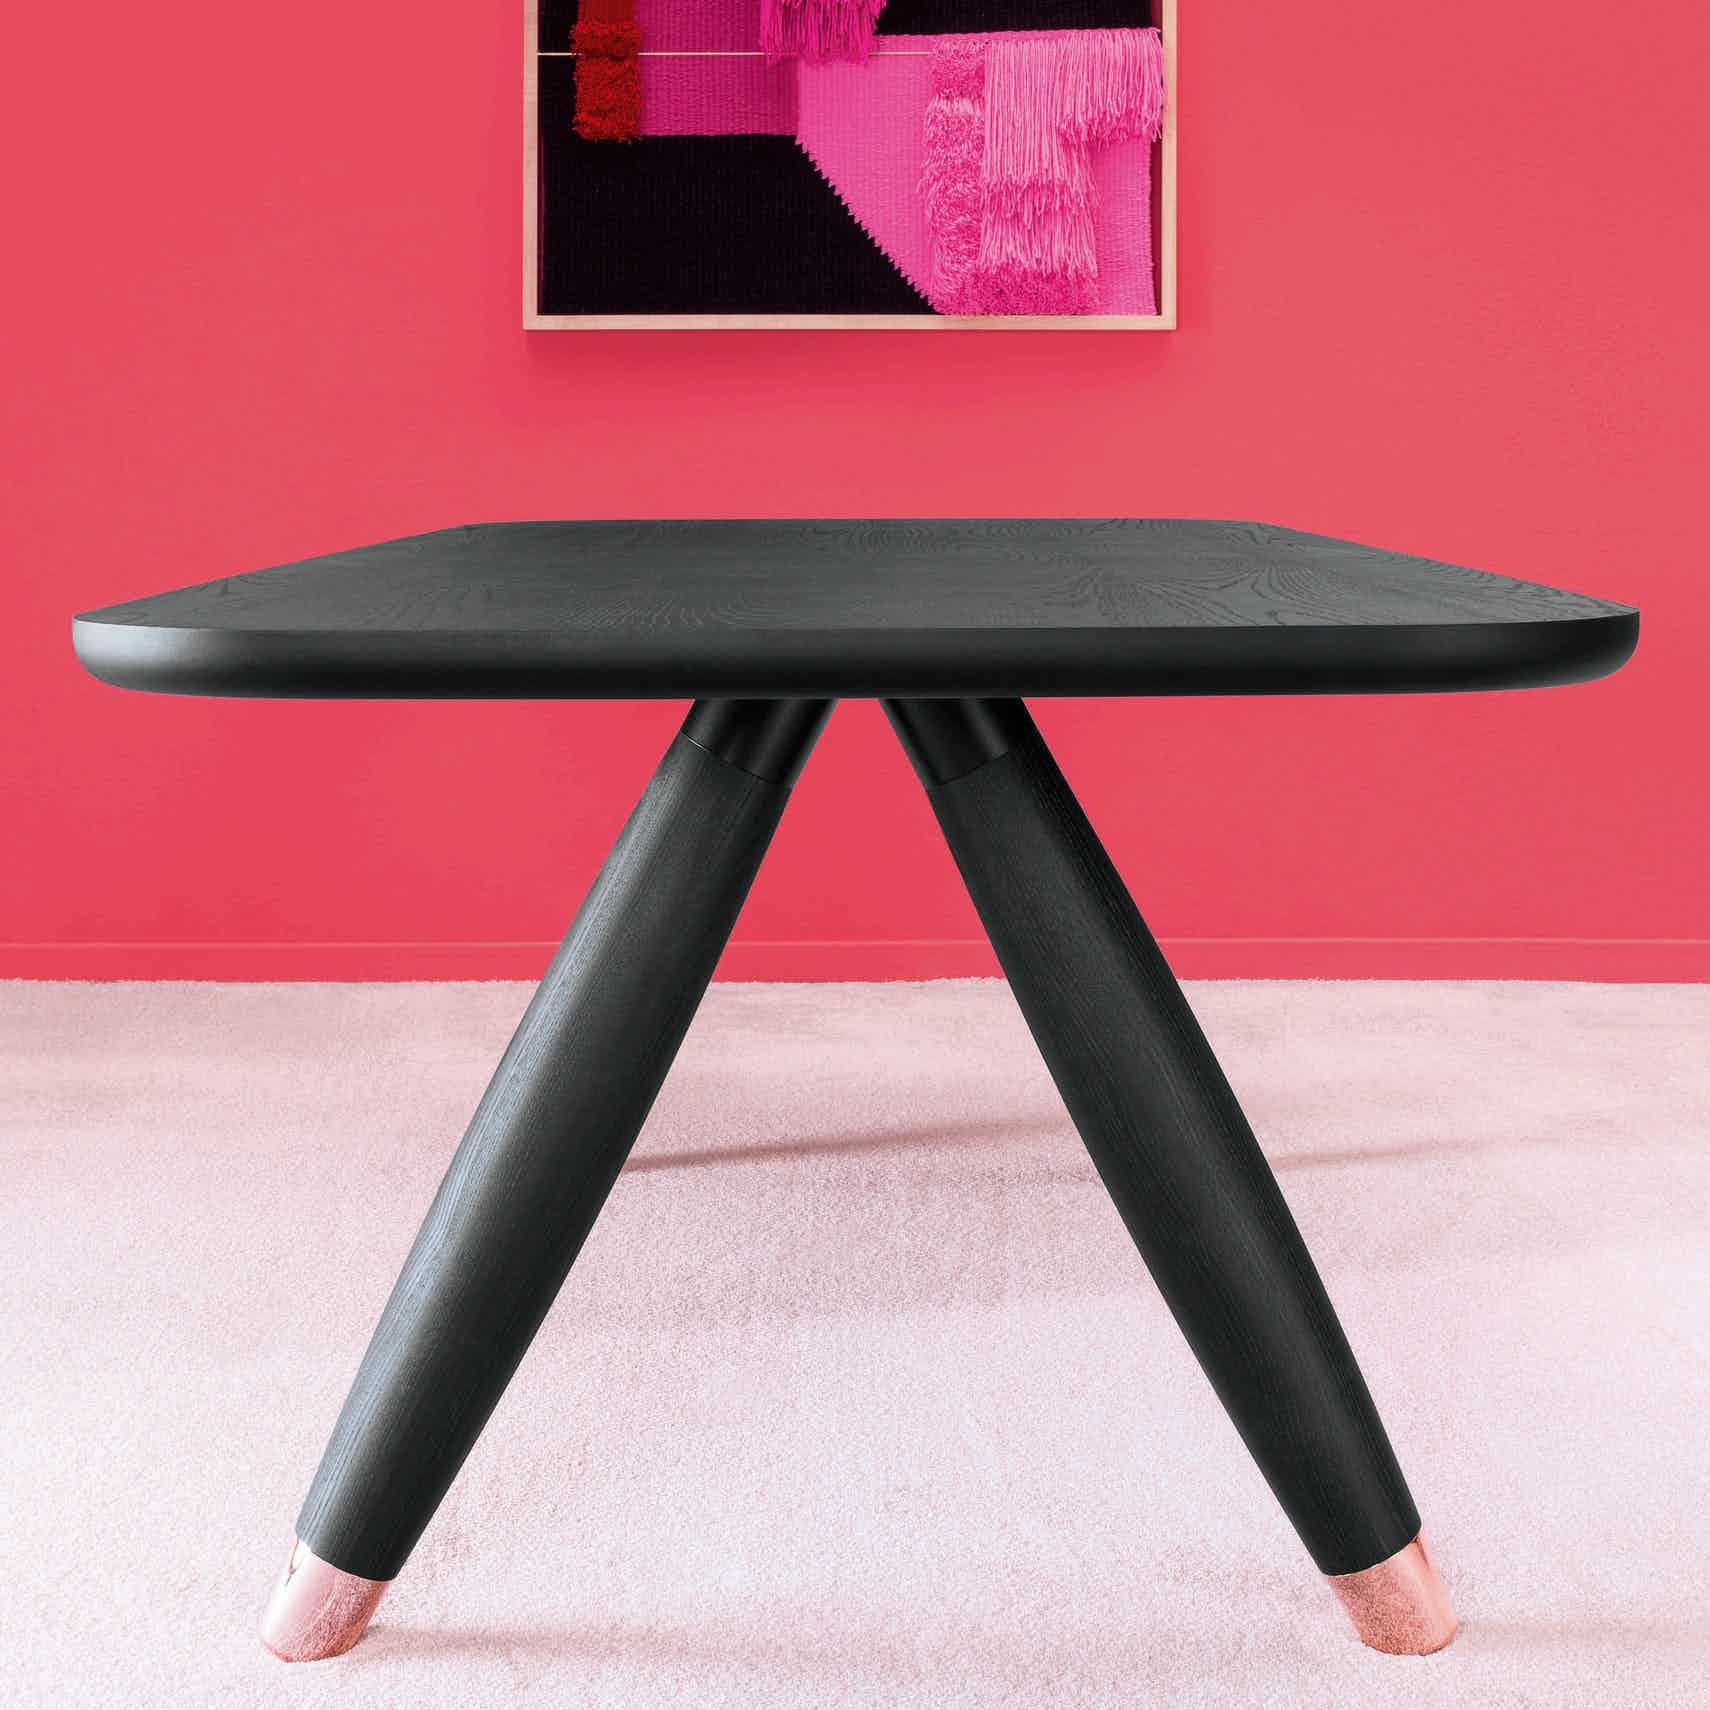 Miniforms Basilio Table Side Haute Living